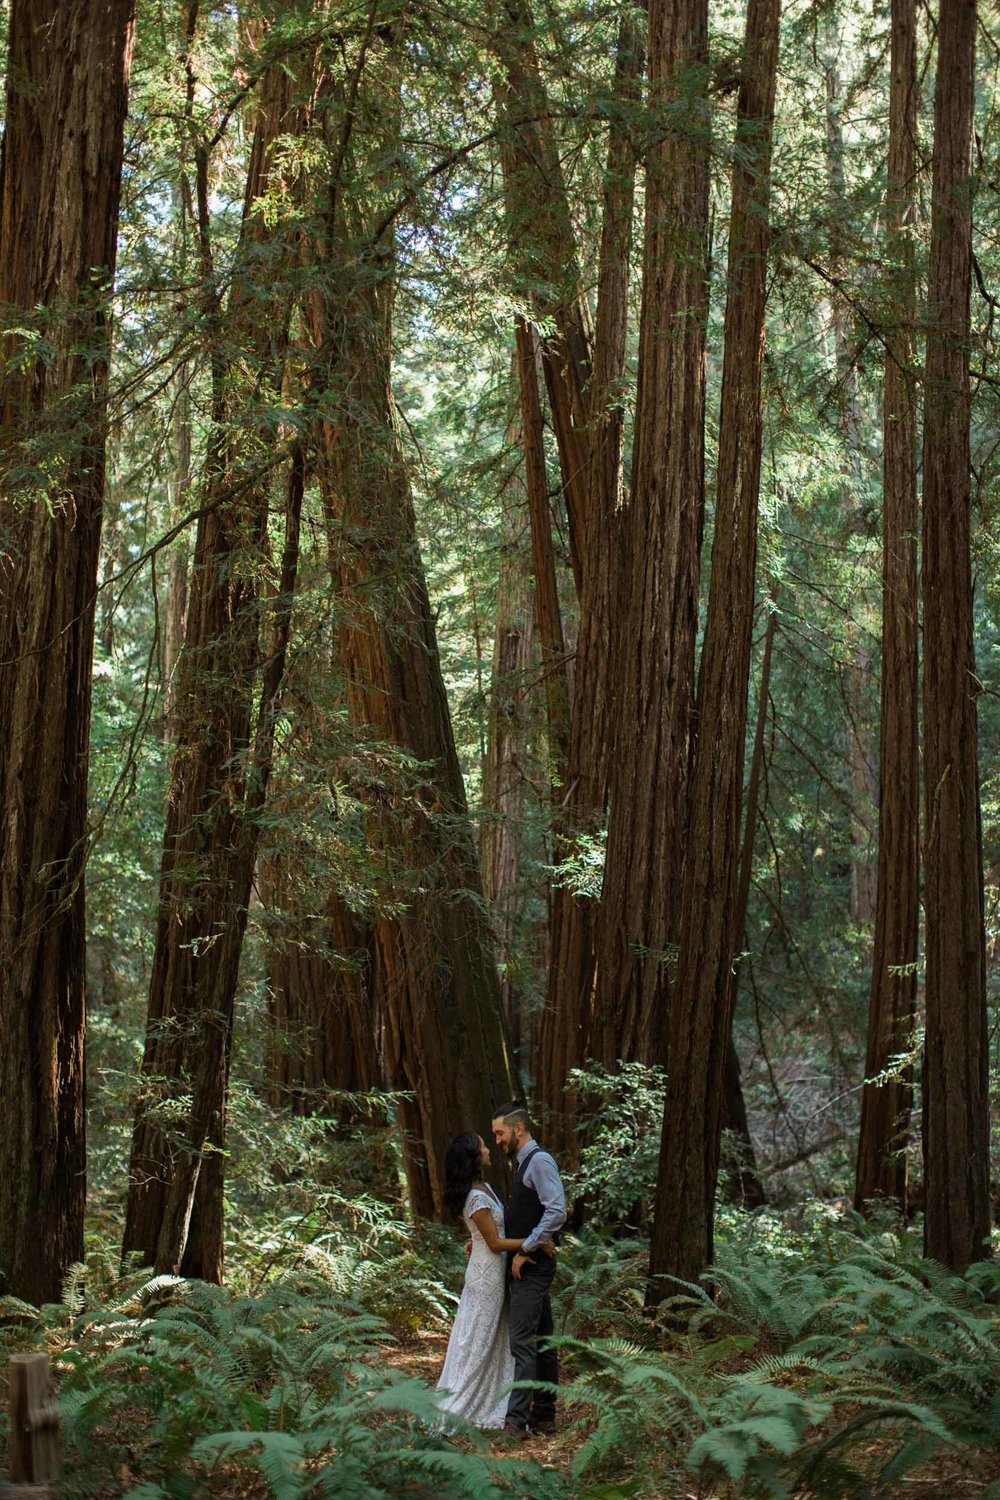 BKM-Photography-Russian-River-Redwoods-California-Wedding-Photographer-1050-2.jpg